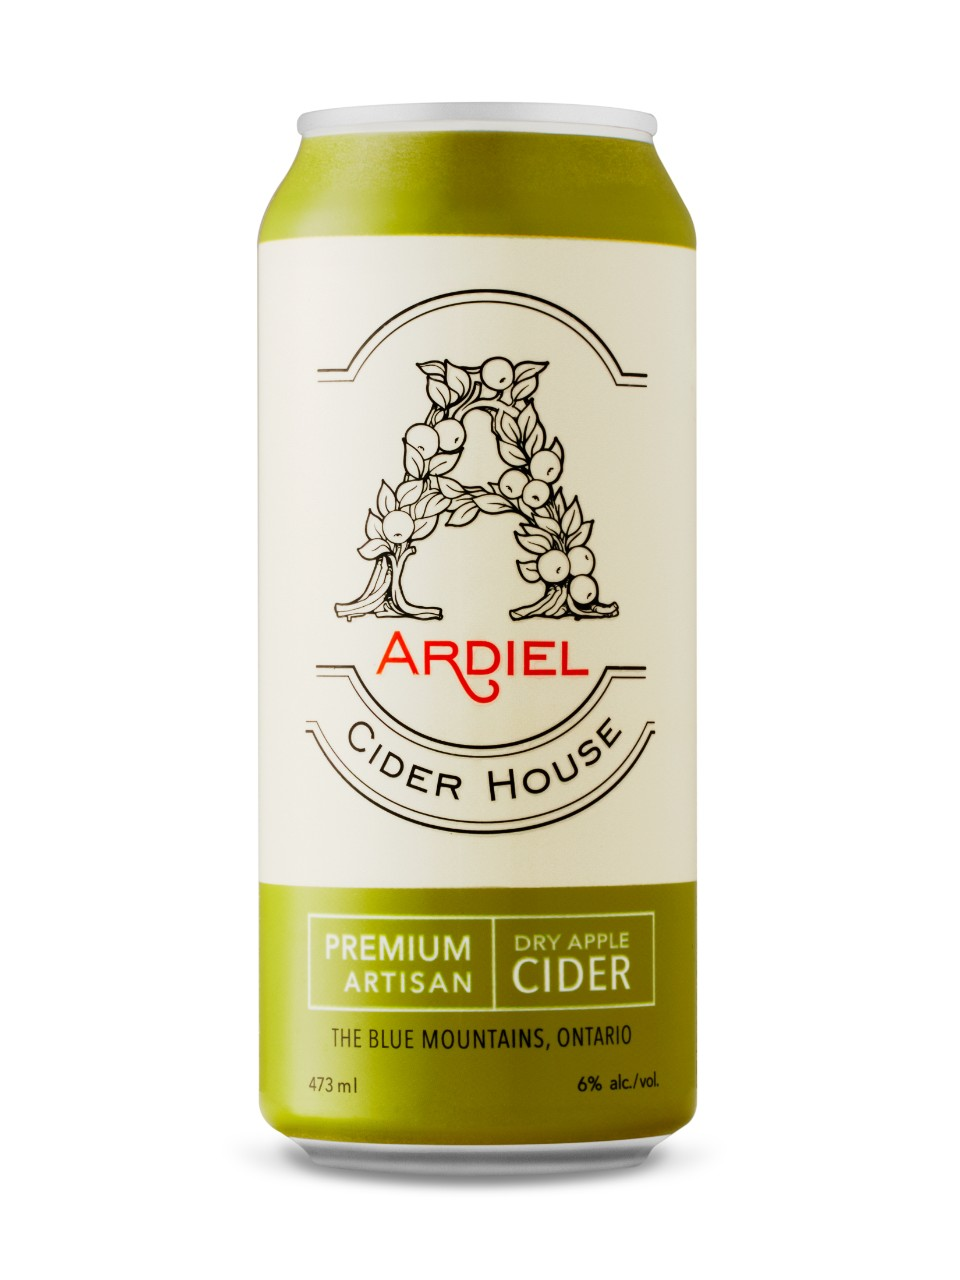 Ardiel Cider House Dry Cider from LCBO